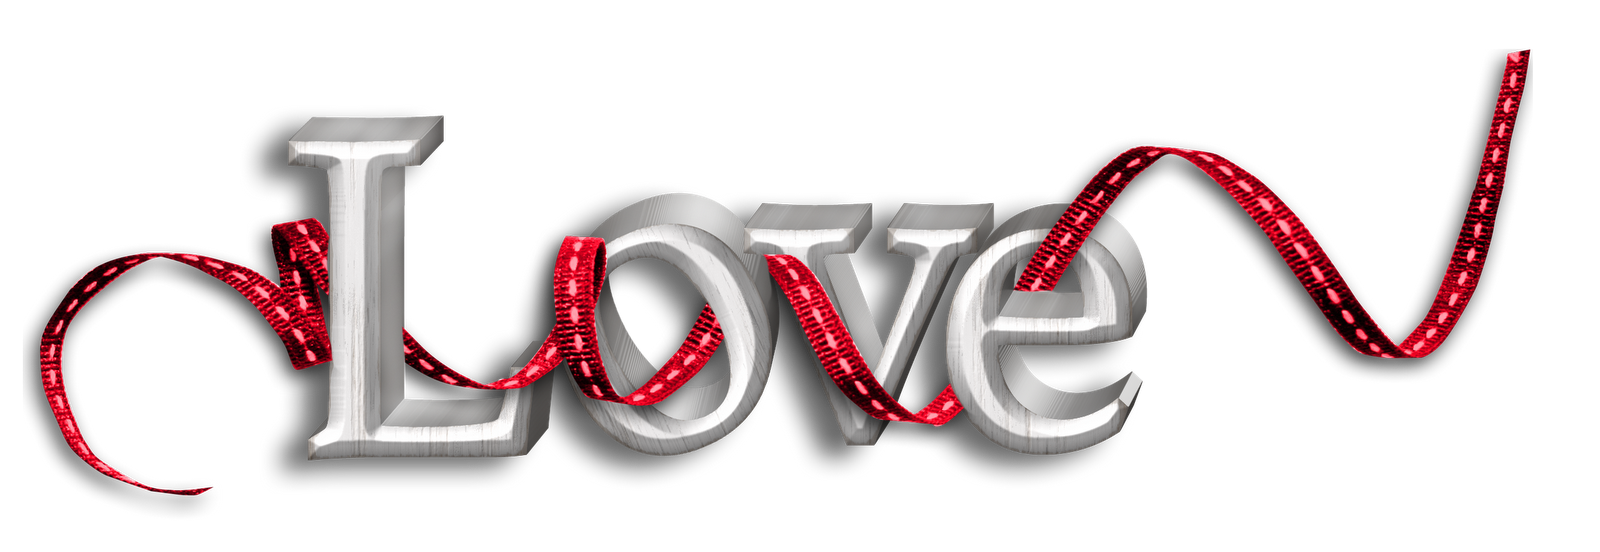 ... : Love Text Effects For Photoscape ~ Get Free Photo Editing Effects